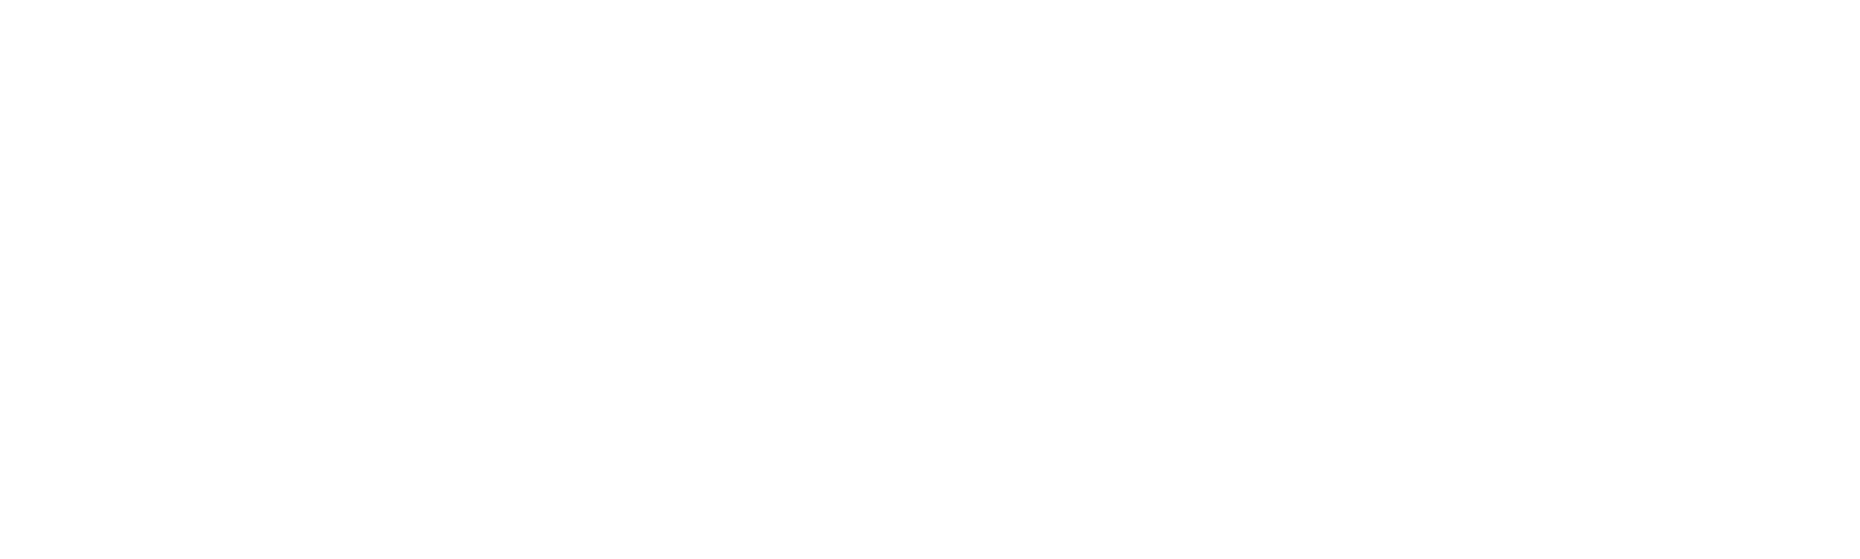 Dynamic wave background two using lines